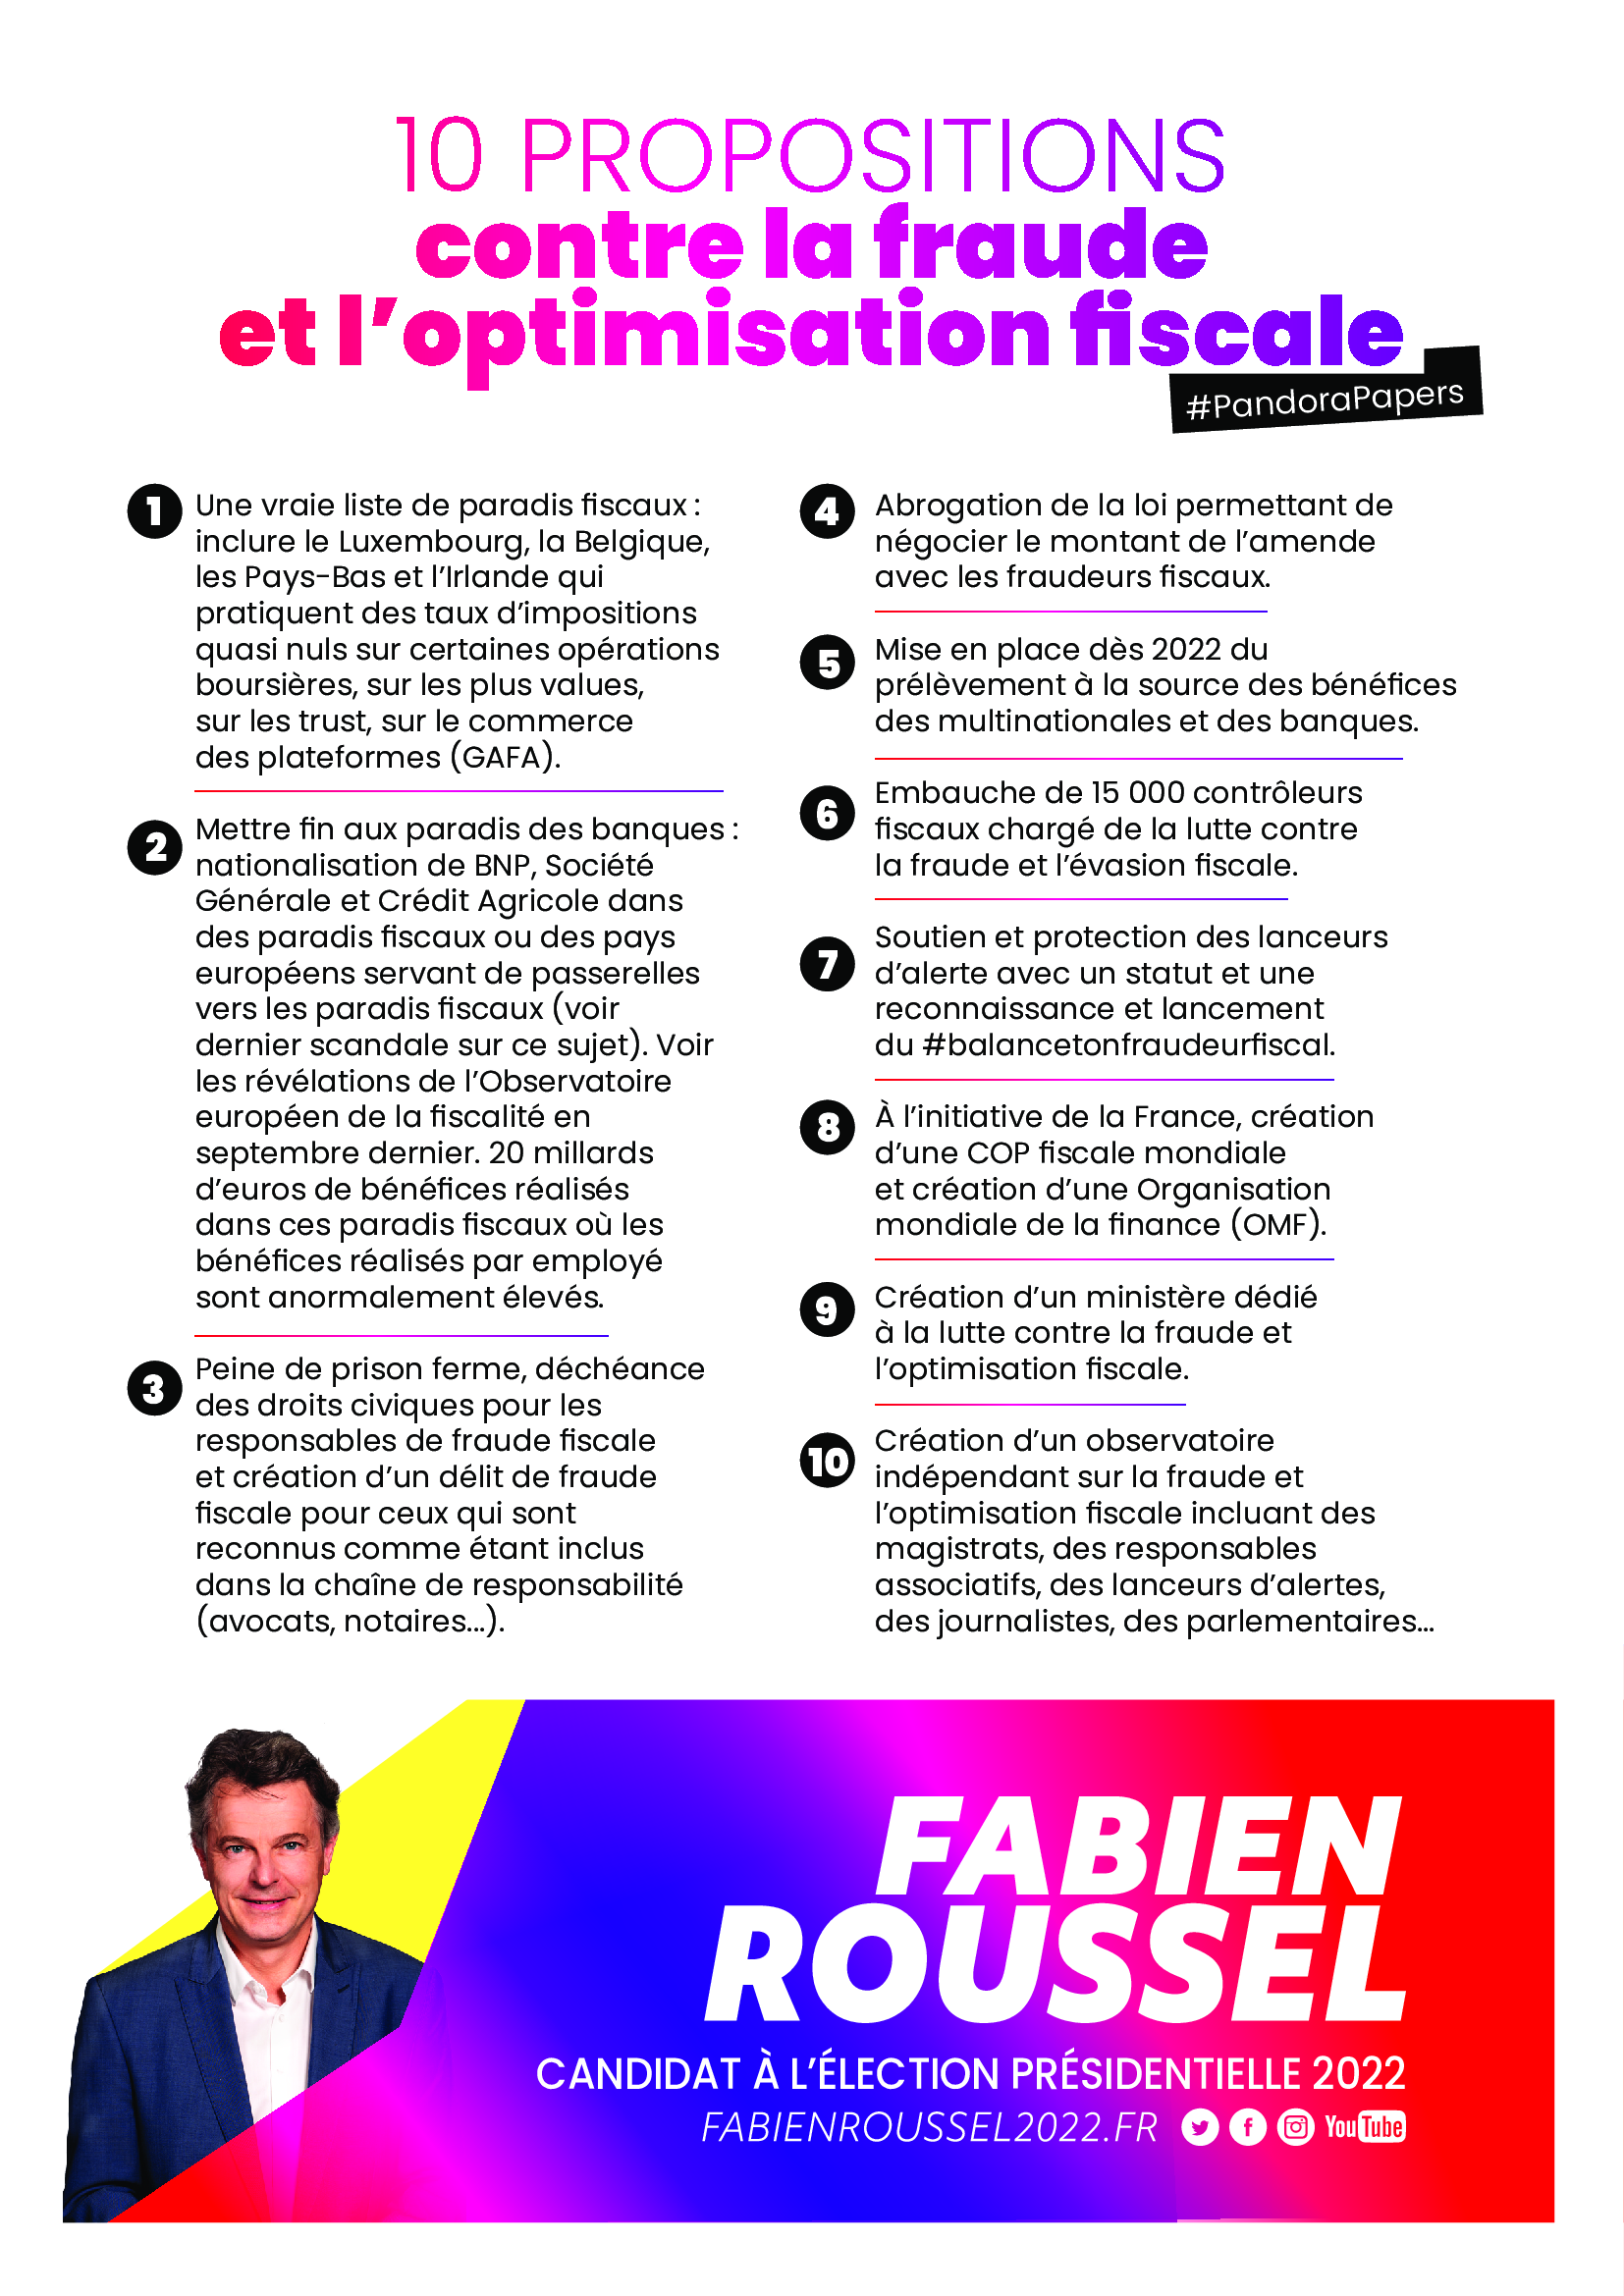 tract reprenant les 10 propositions